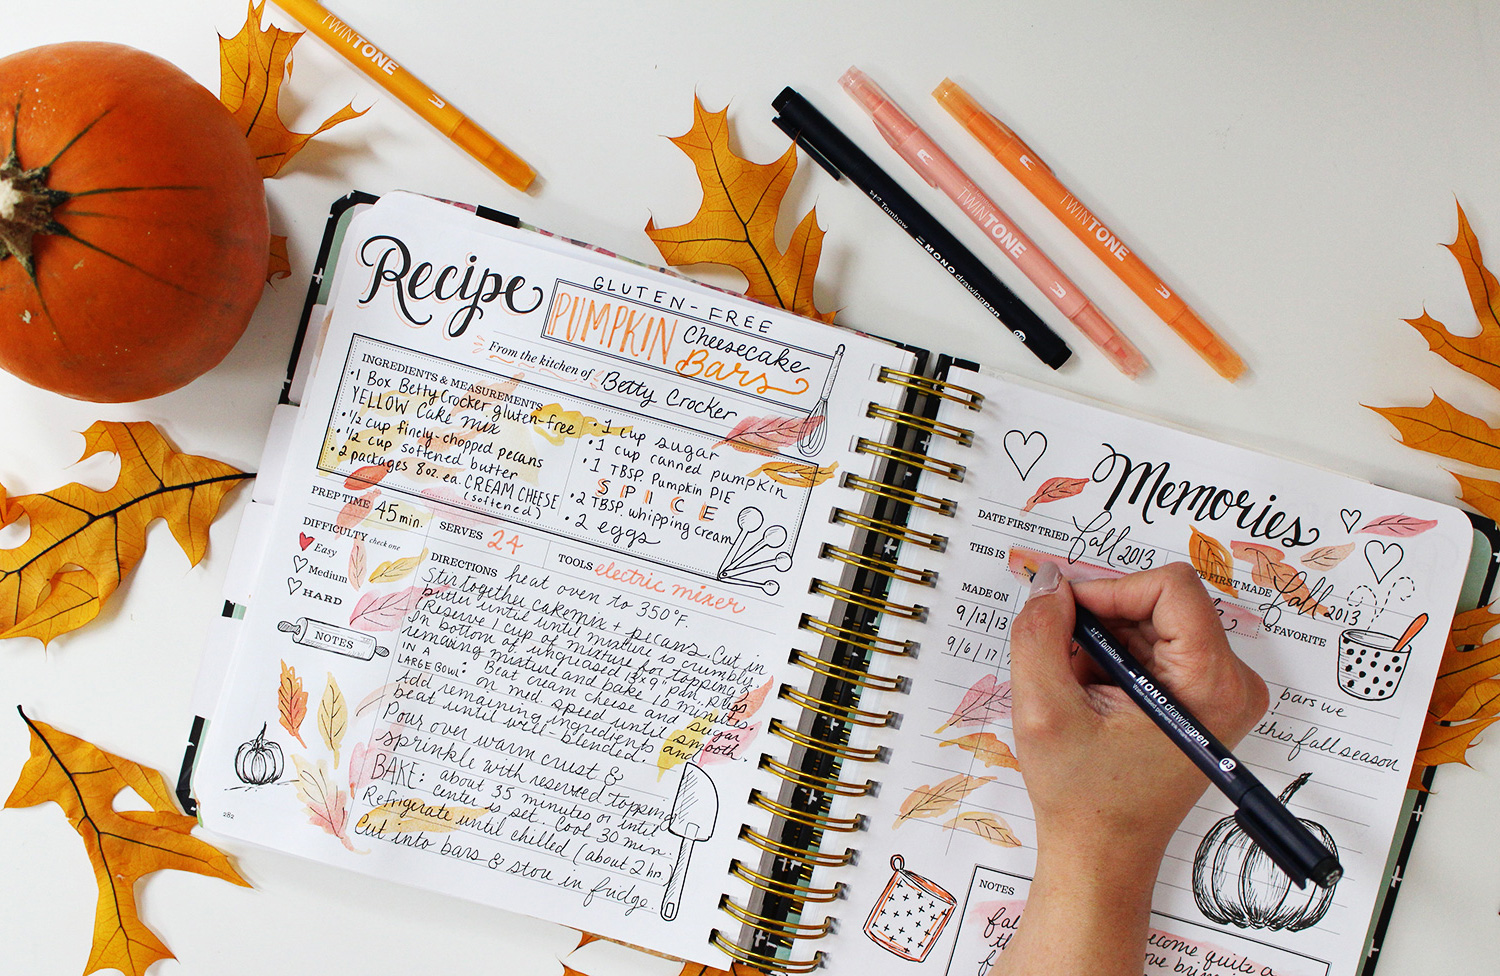 Pumpkin Cheesecake Bar Recipe in my Keepsake Kitchen Diary using Planner Supplies like New Tombow Markers & Pens